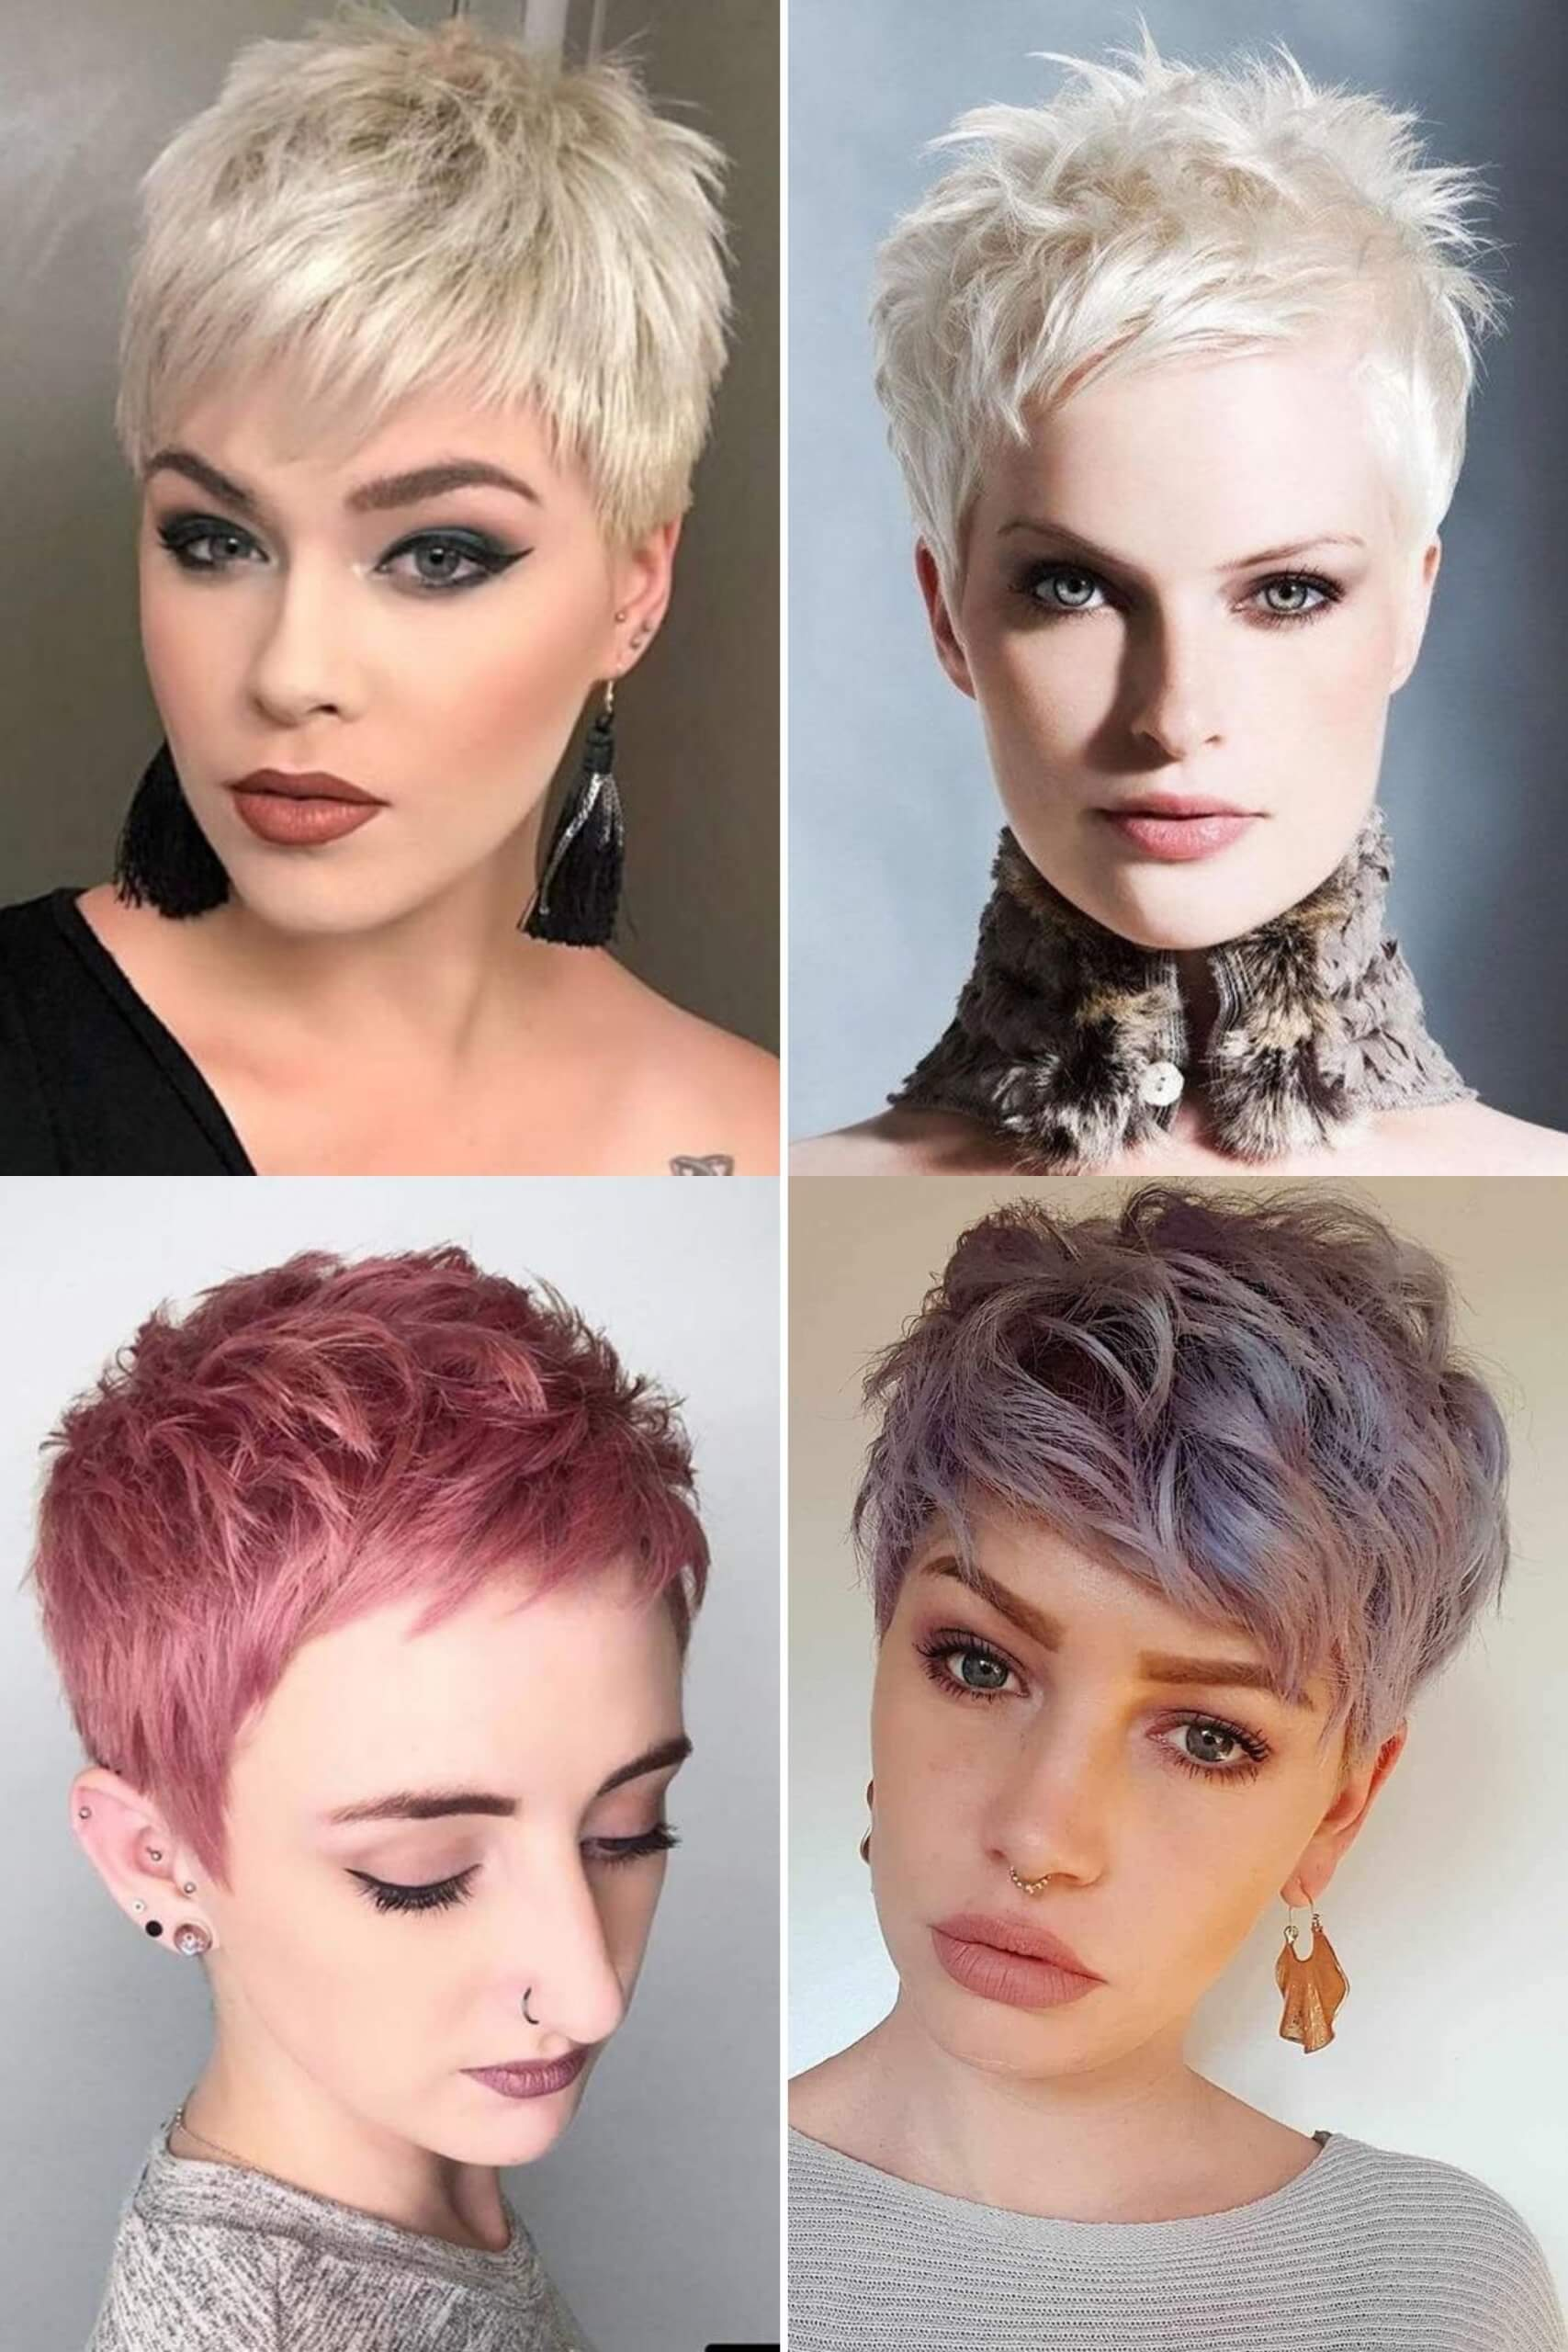 Wondrous Short Pixie Haircuts Hair Cutting Workshop Nyc Mar 22Nd 2020 Schematic Wiring Diagrams Amerangerunnerswayorg